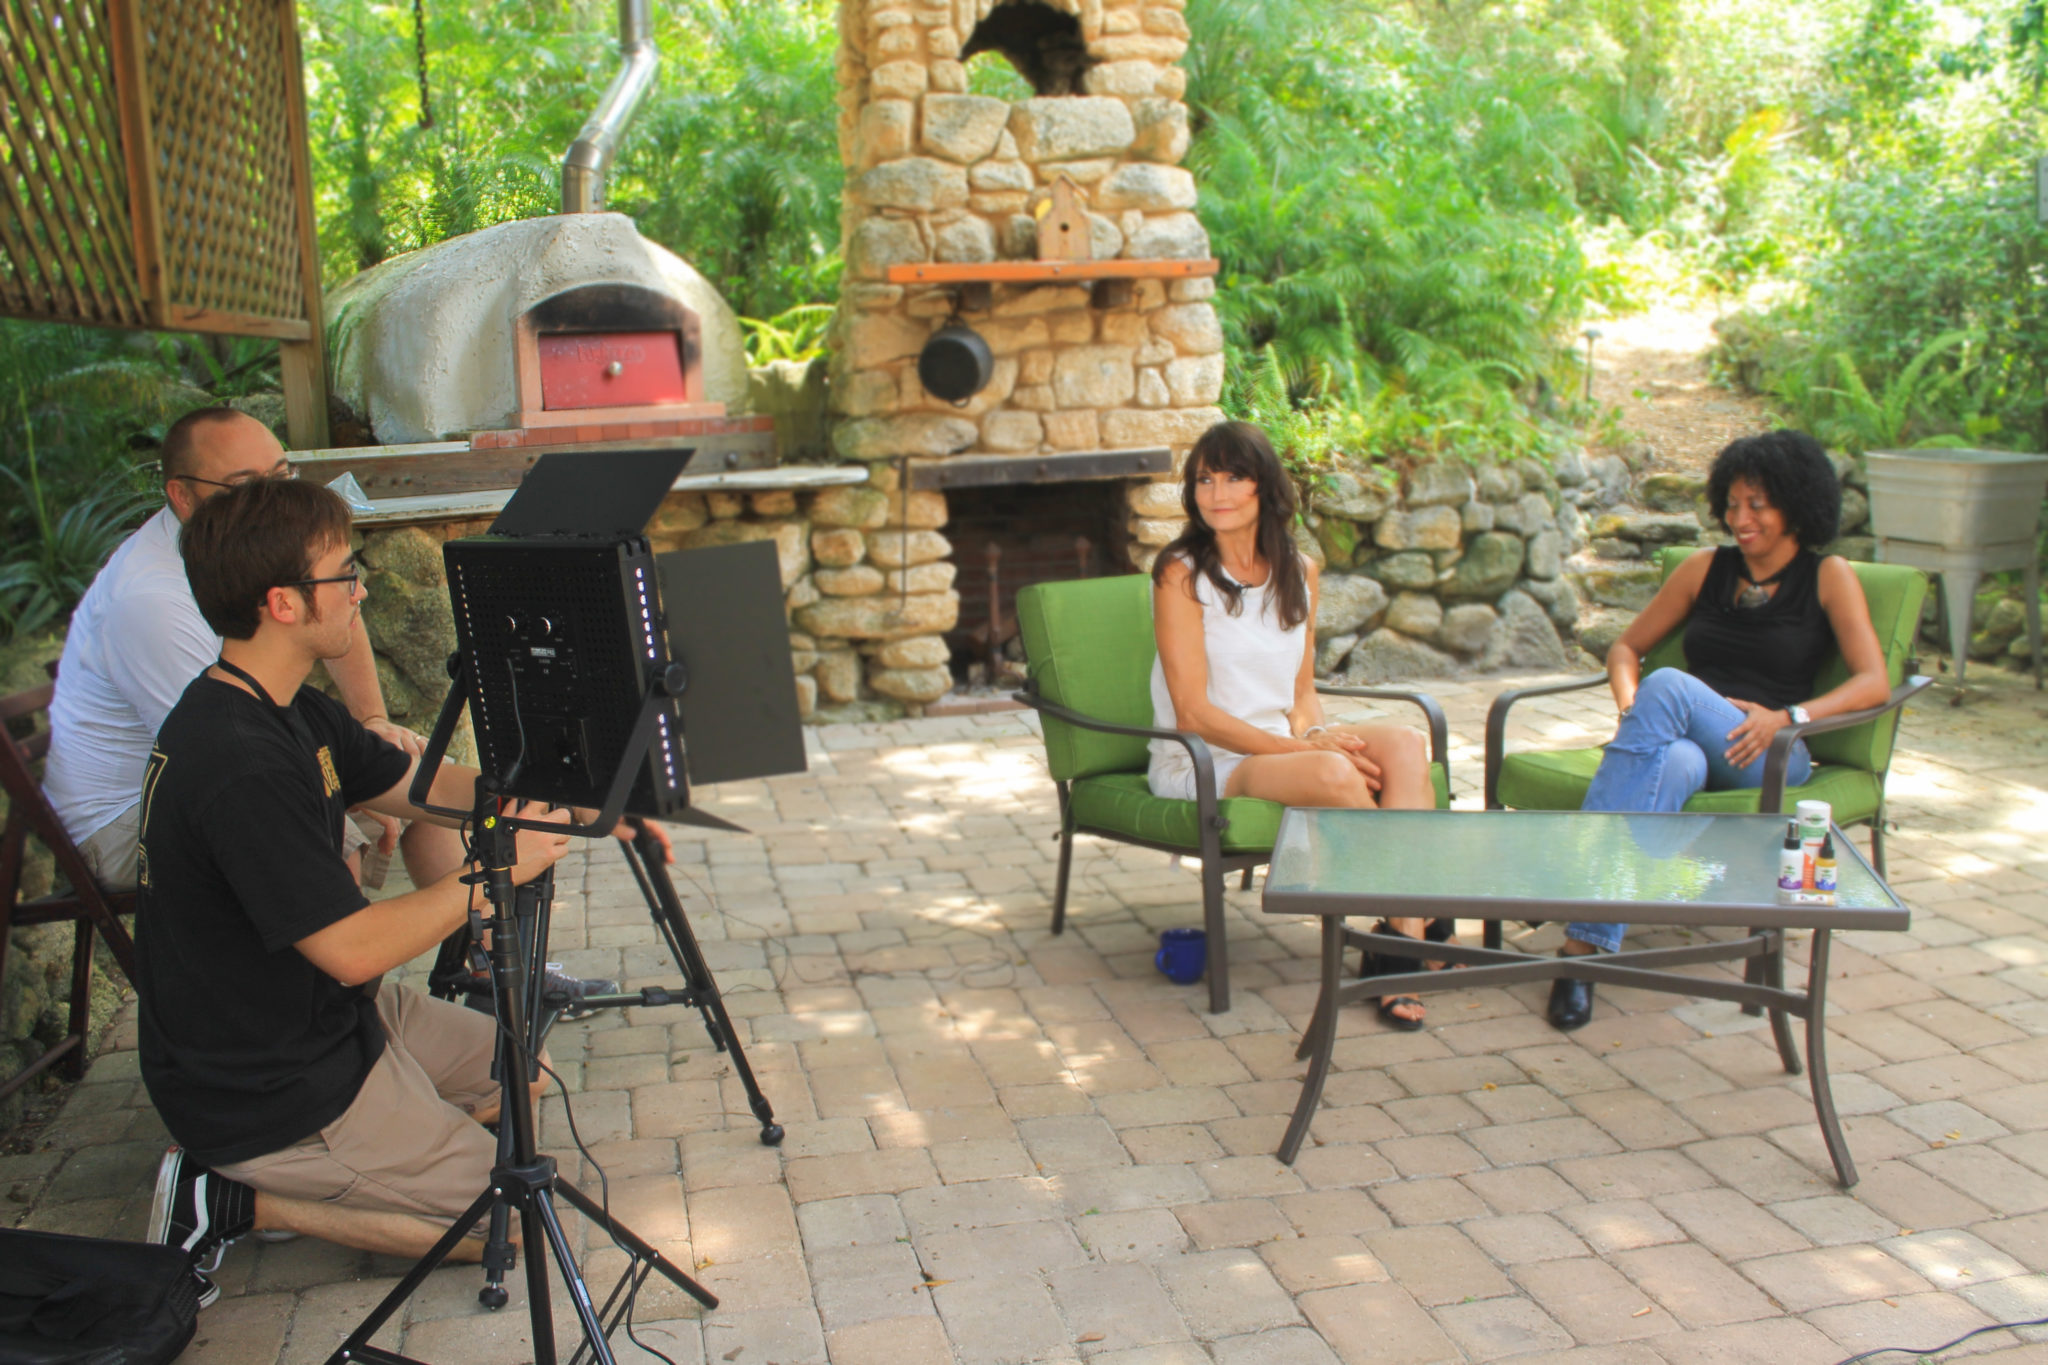 Pam Hoelzle and Janel Young sit down to chat about nearly dying and starting an organic pet care company